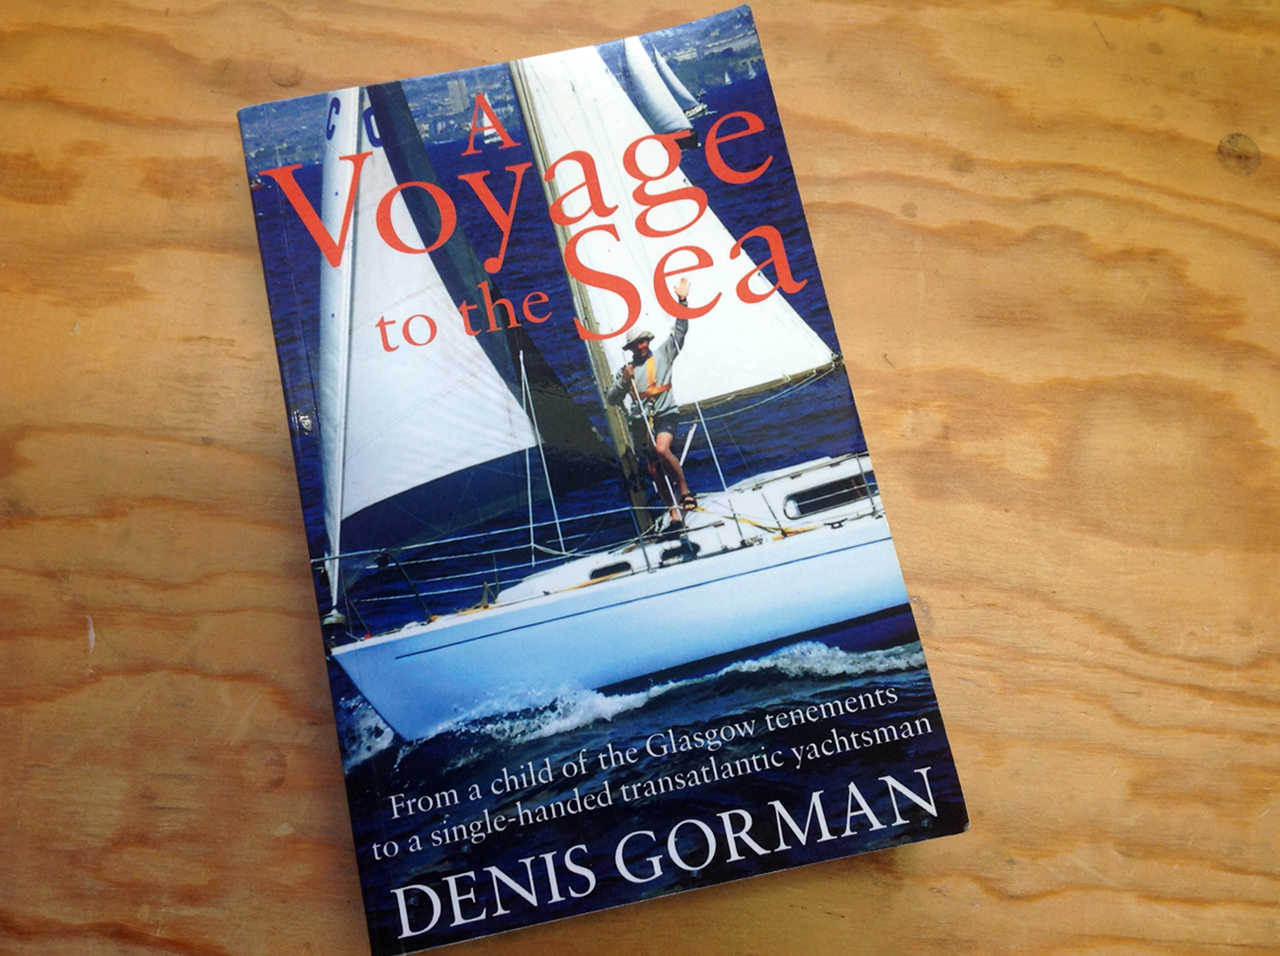 A Voyage To The Sea